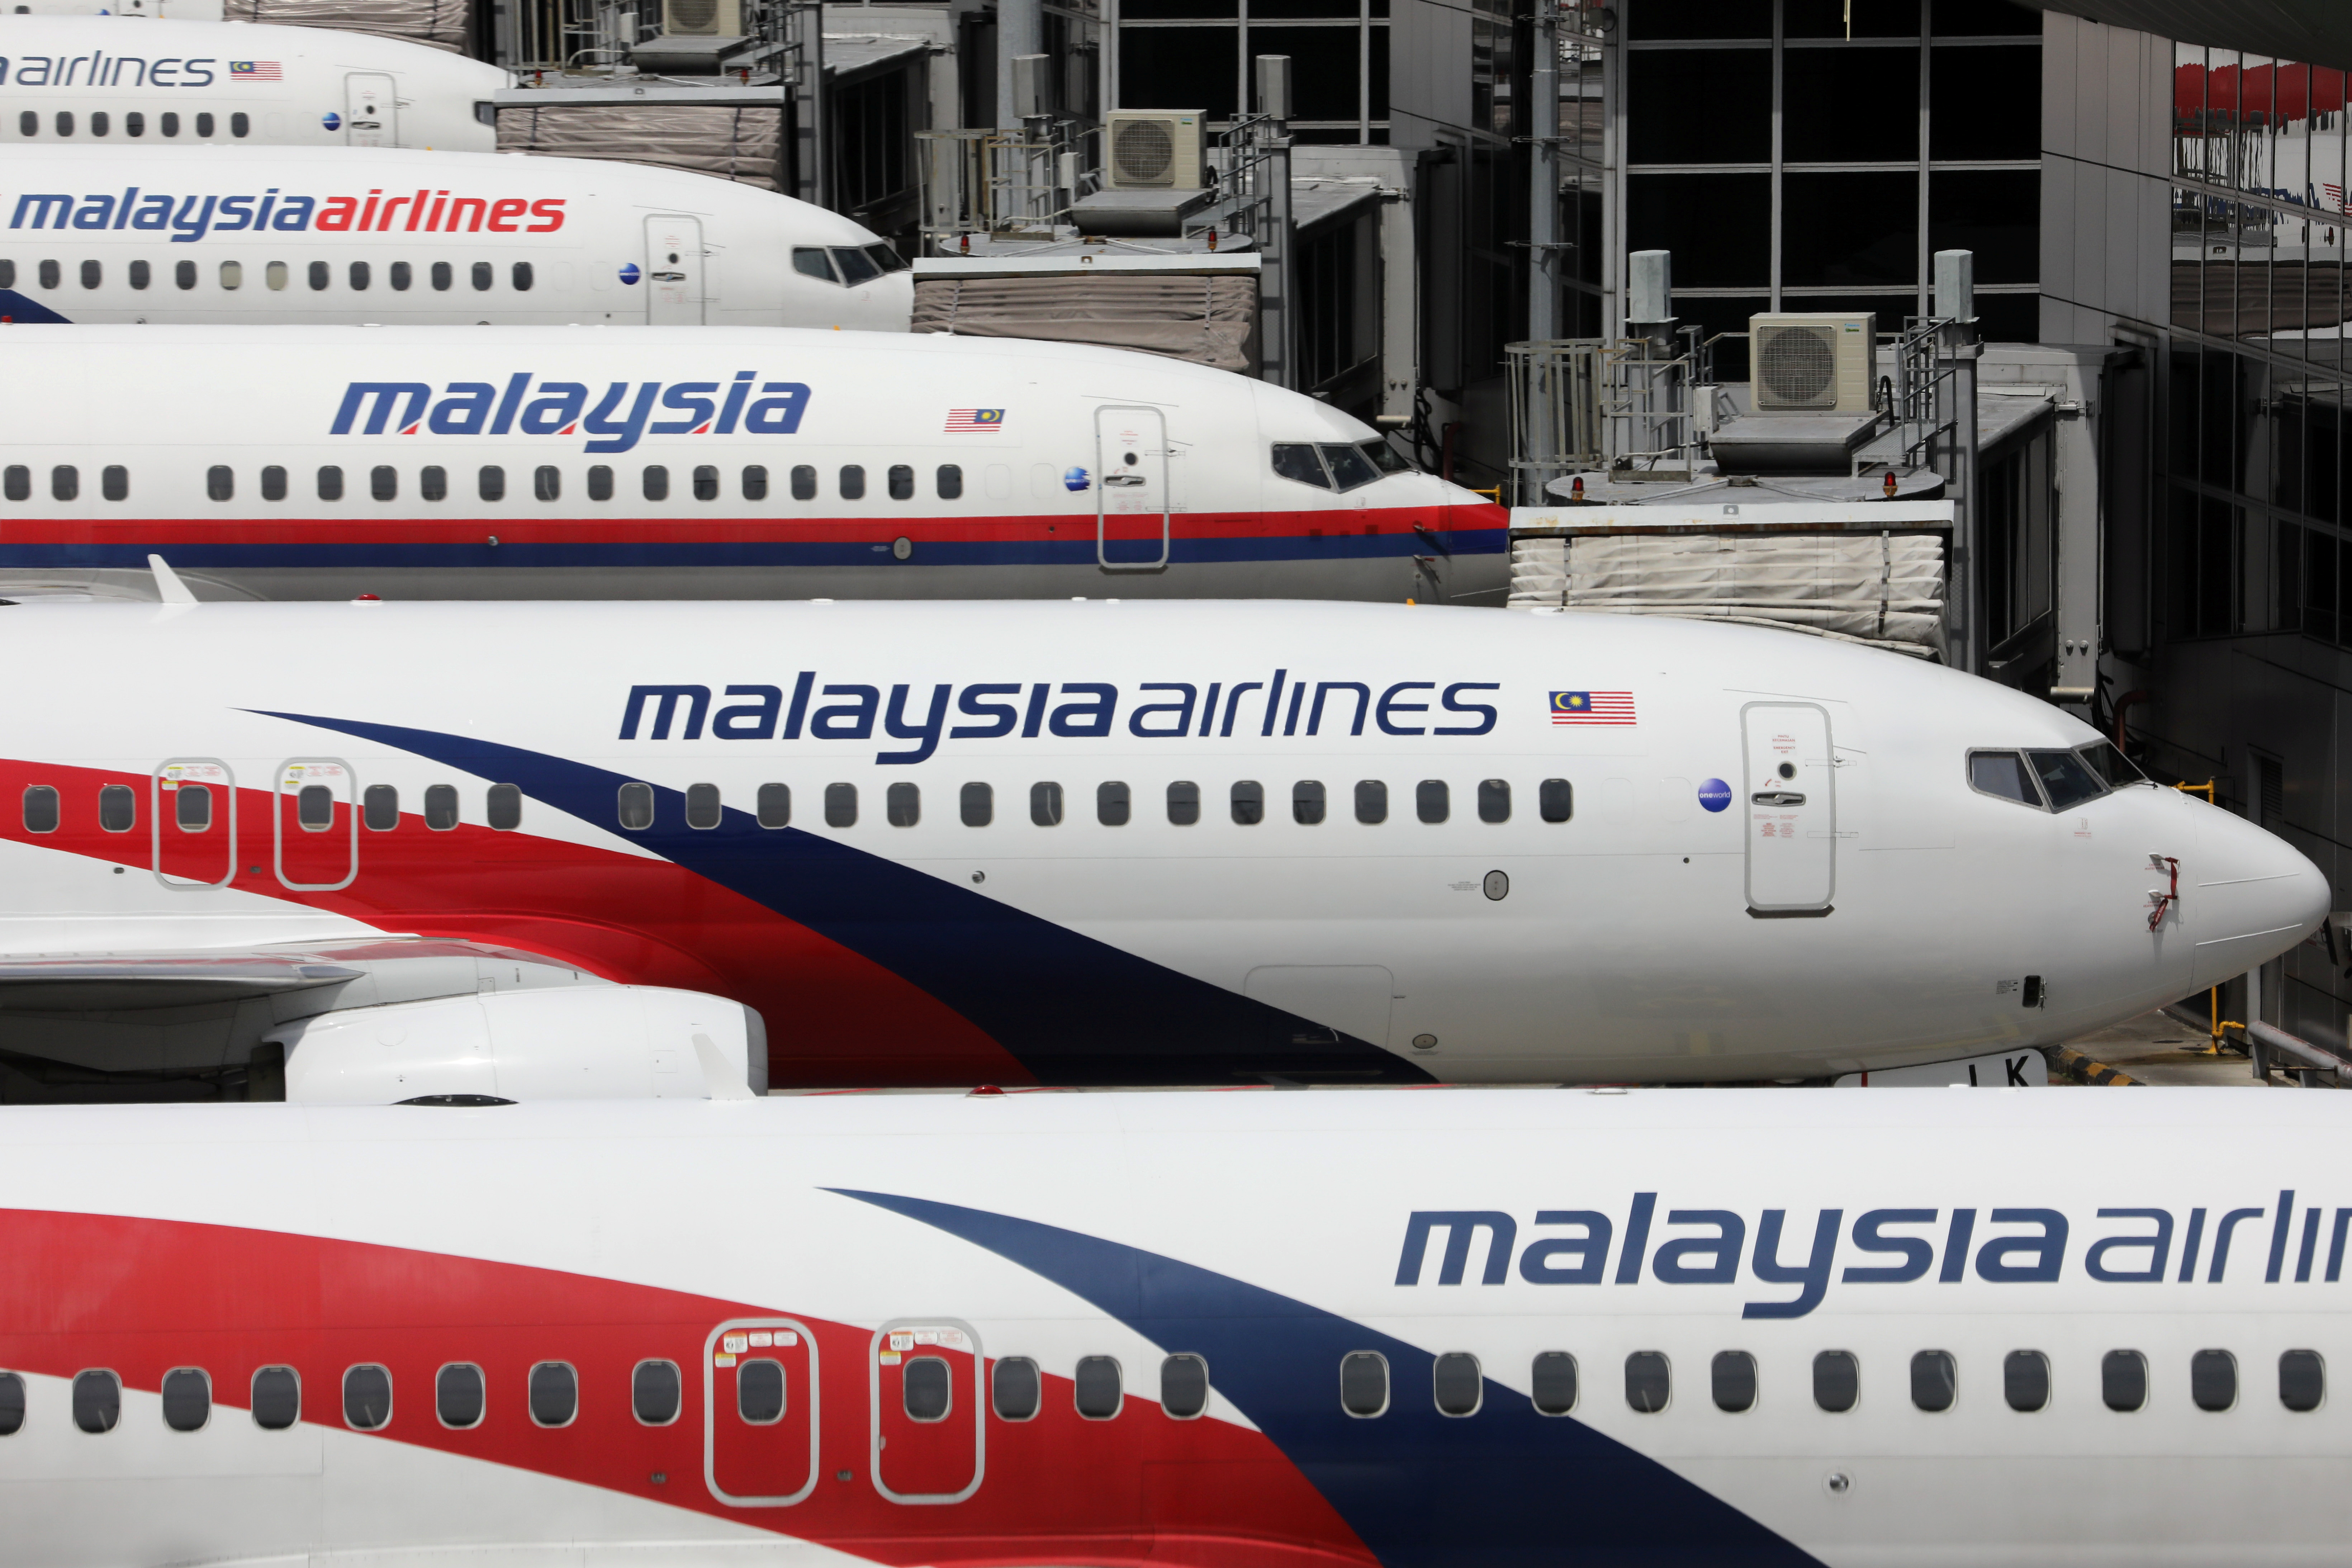 Malaysia Airlines planes are seen parked at Kuala Lumpur International Airport, amid the coronavirus disease (COVID-19) outbreak in Sepang, Malaysia October 6, 2020. REUTERS/Lim Huey Teng